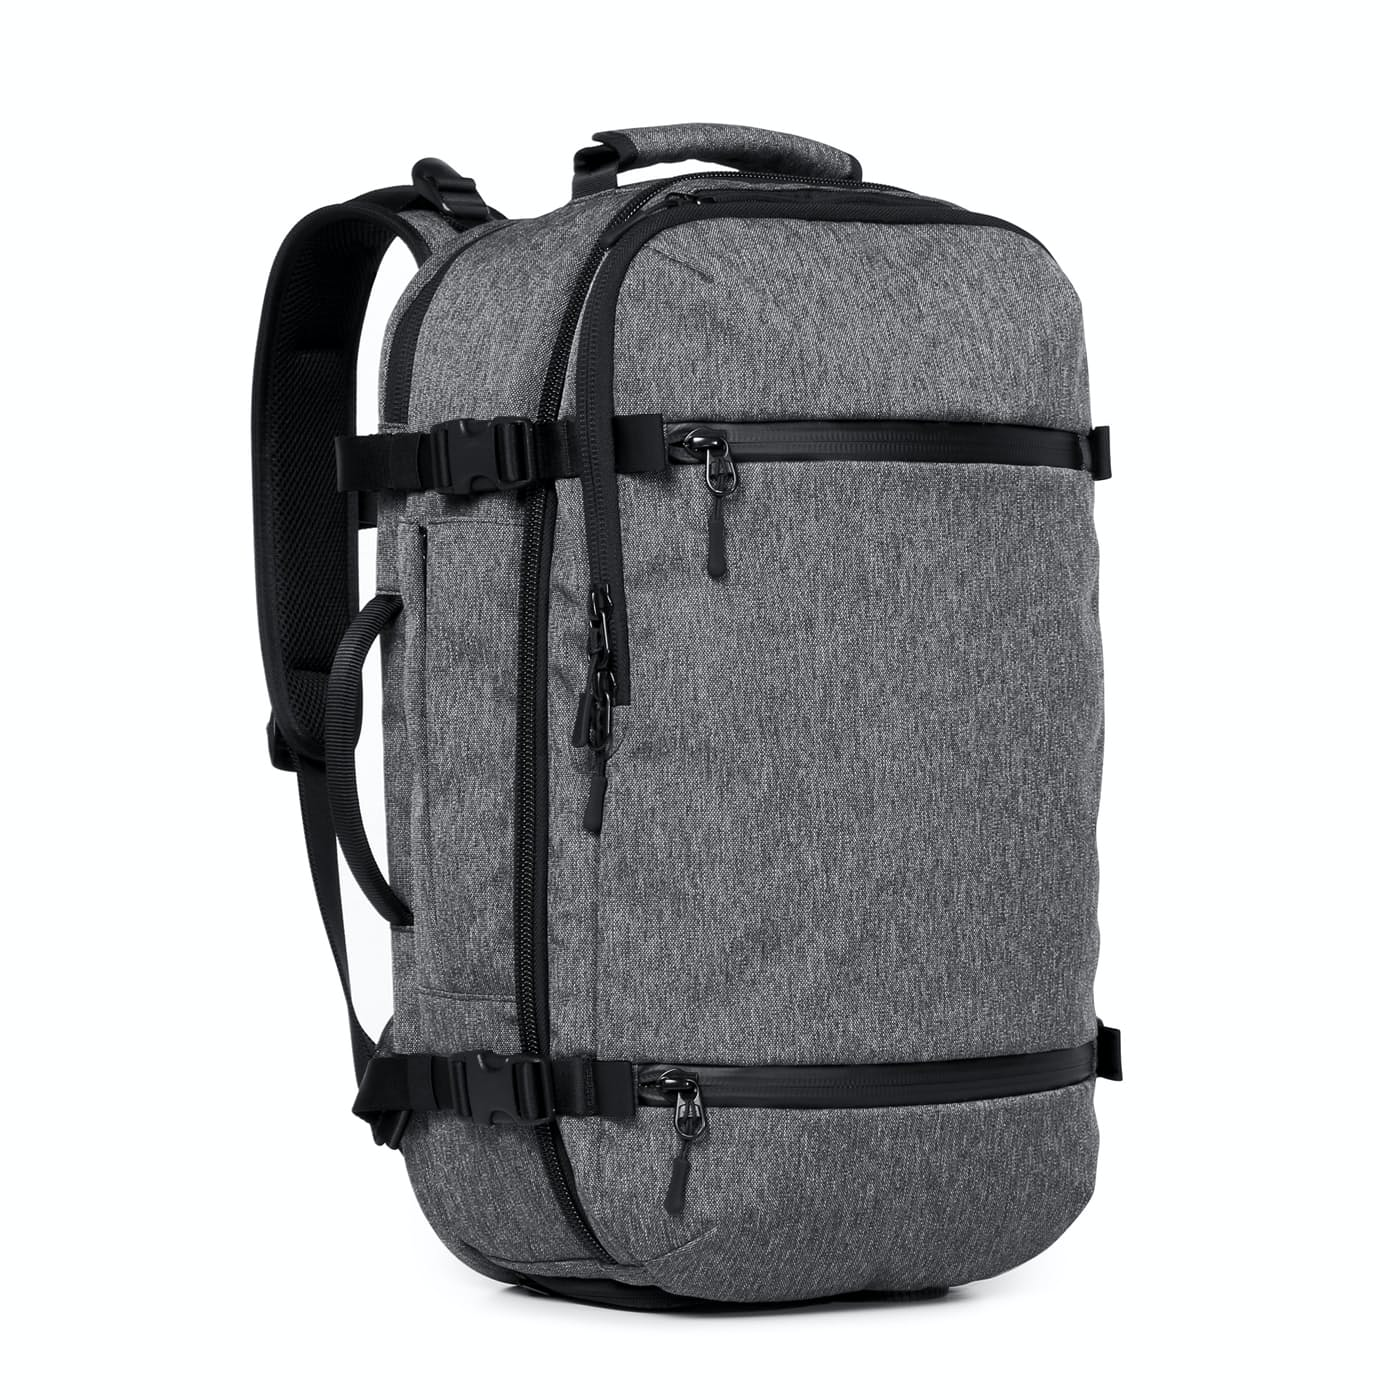 2tyq6zmmwq aer travel pack 0 original